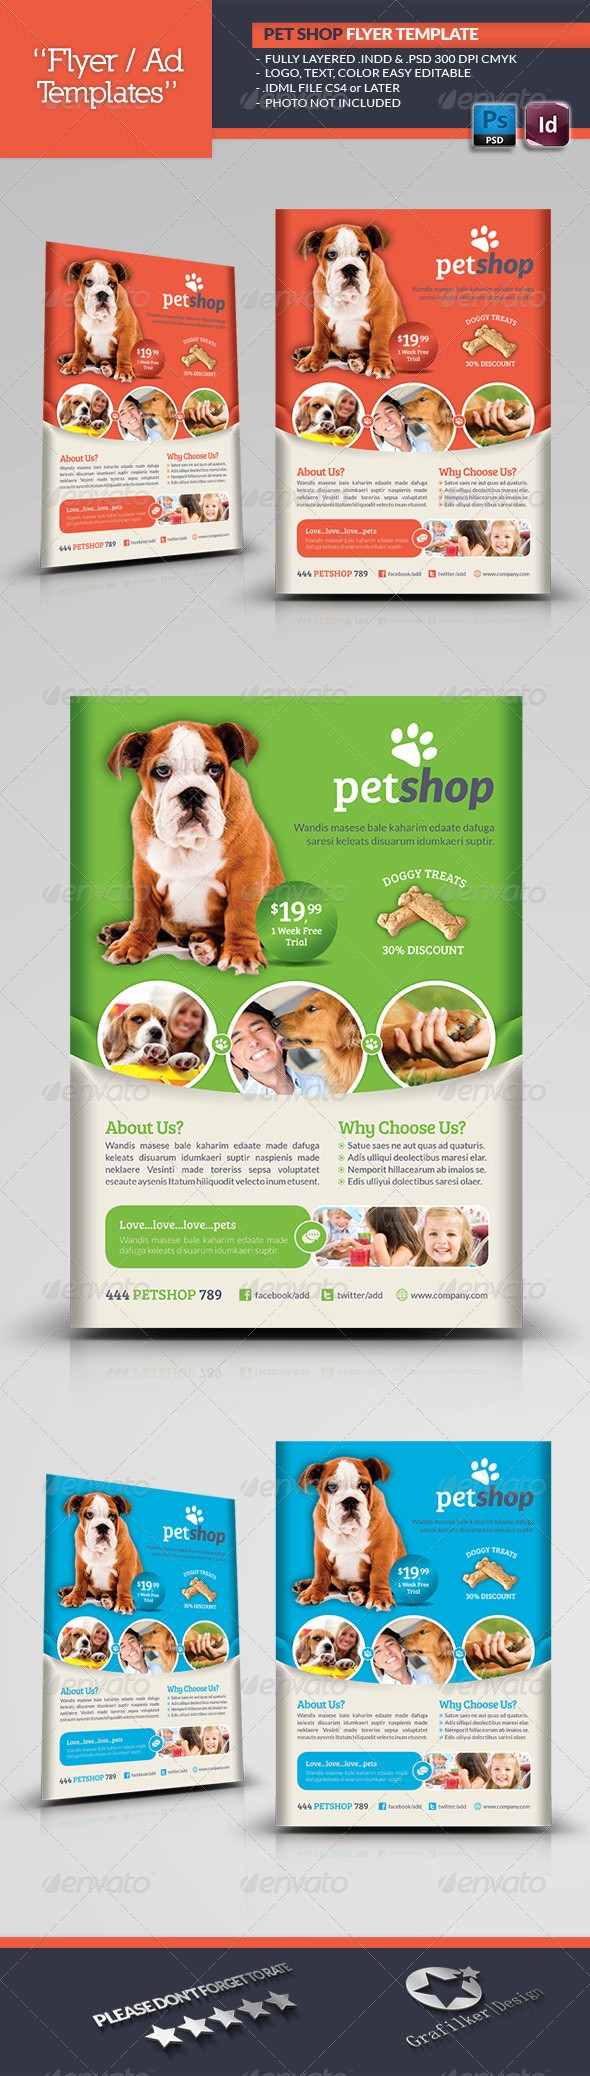 Puppy for Sale Flyer Templates Beautiful Pet Care Banners Psd Templates and Animal Shelter Pet